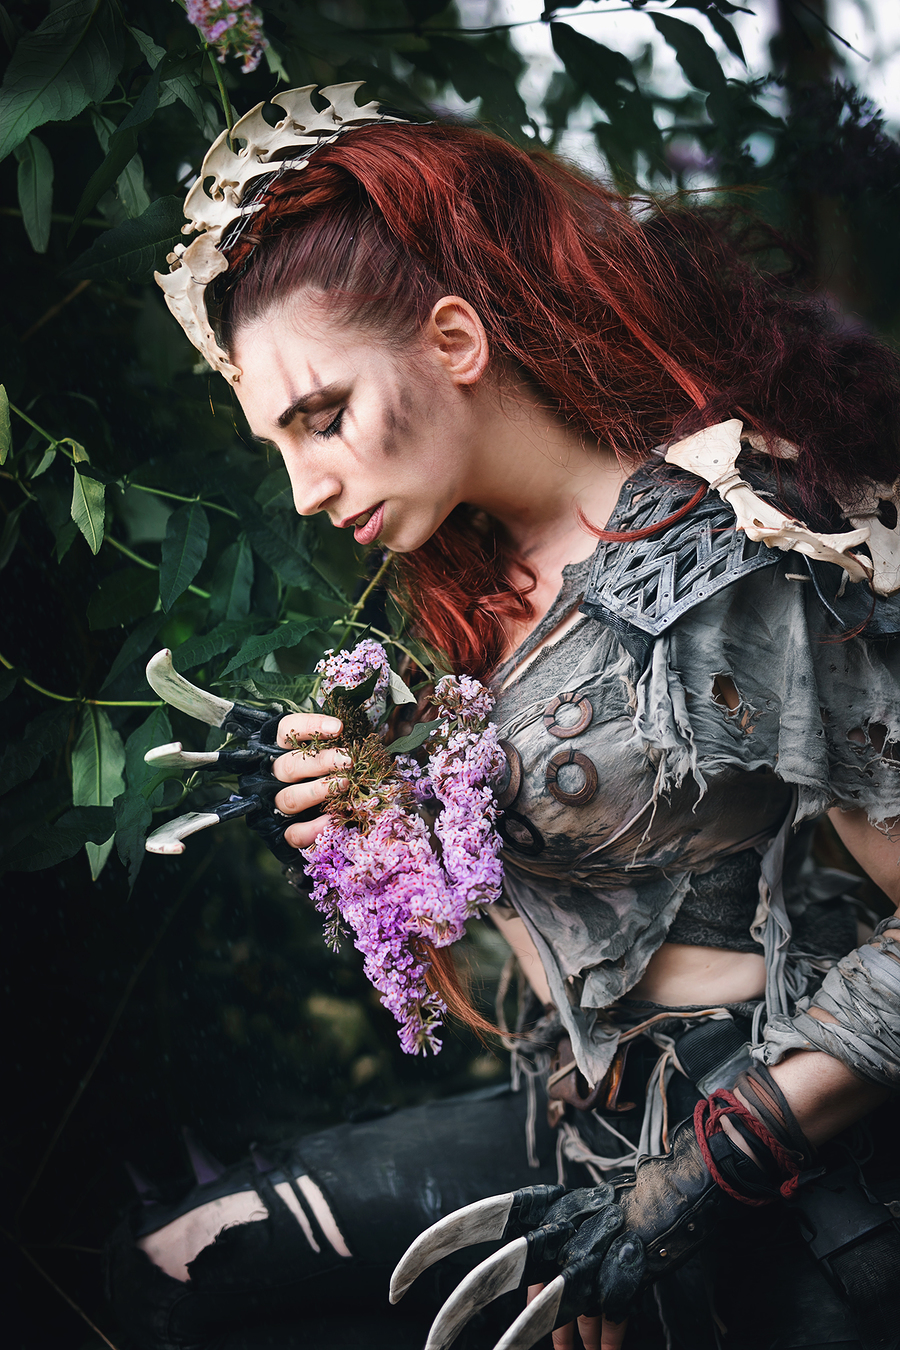 Flowers of the Heart / Photography by So Say We All, Model Roswell Ivory, Post processing by So Say We All / Uploaded 1st November 2017 @ 08:33 PM